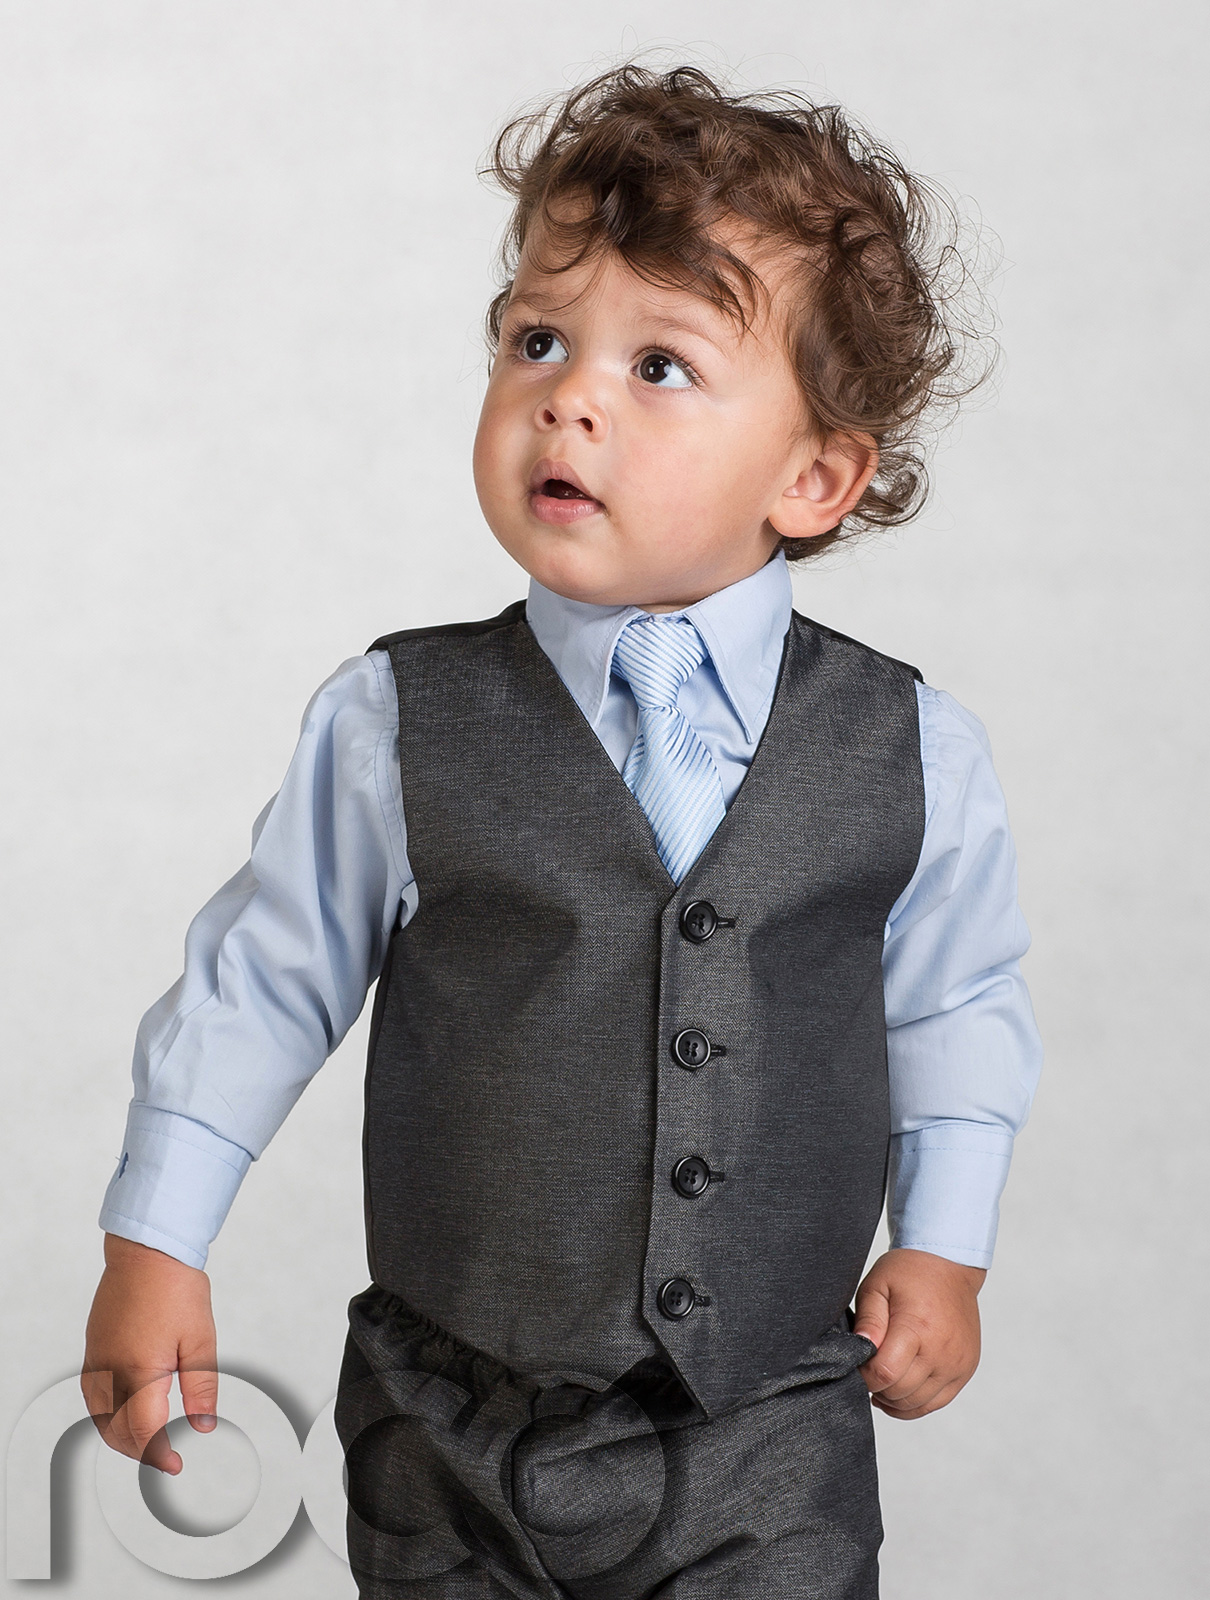 Angel Size XLarge Boys Toddler Tuxedo Black Suit with Tie Baby Size XL / MONTHS. Sold by nikgold. $ Angel Boys Toddler White Tuxedo Suit with Tail BABY Size / 2T - 3T - 4T. Sold by nikgold. $ Angel Baby Boys Toddler Tuxedo Black Suit with Bow Tie Size Small / S / Months.